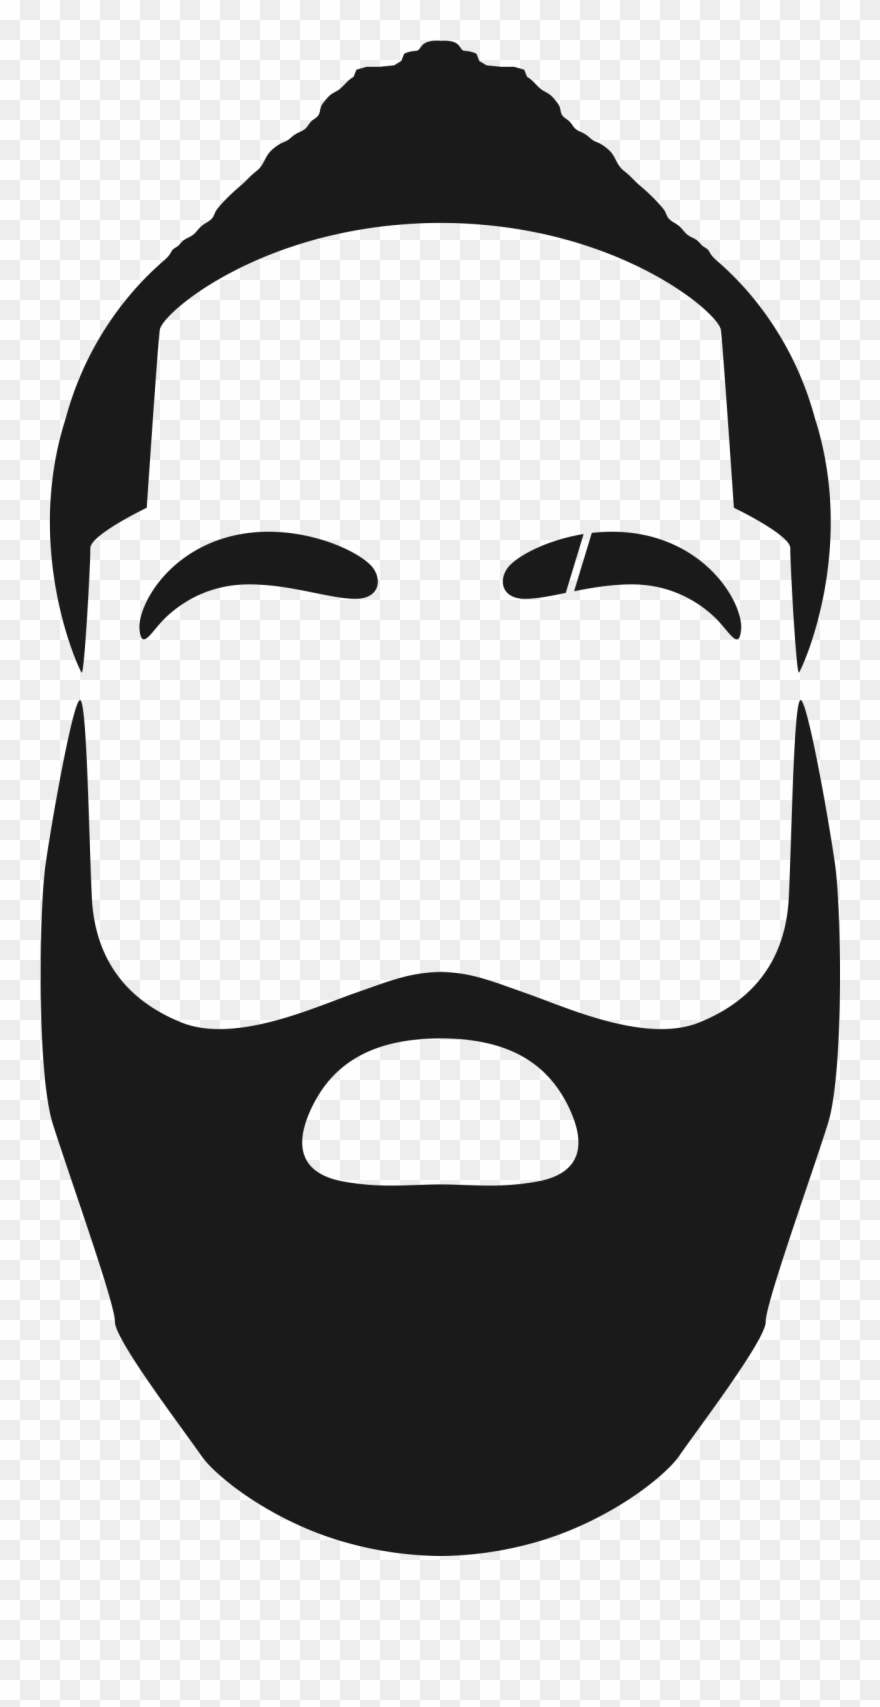 a900b8cf96a4 James Harden Transparent Png Images Stickpng - James Harden Easy Drawing  Clipart